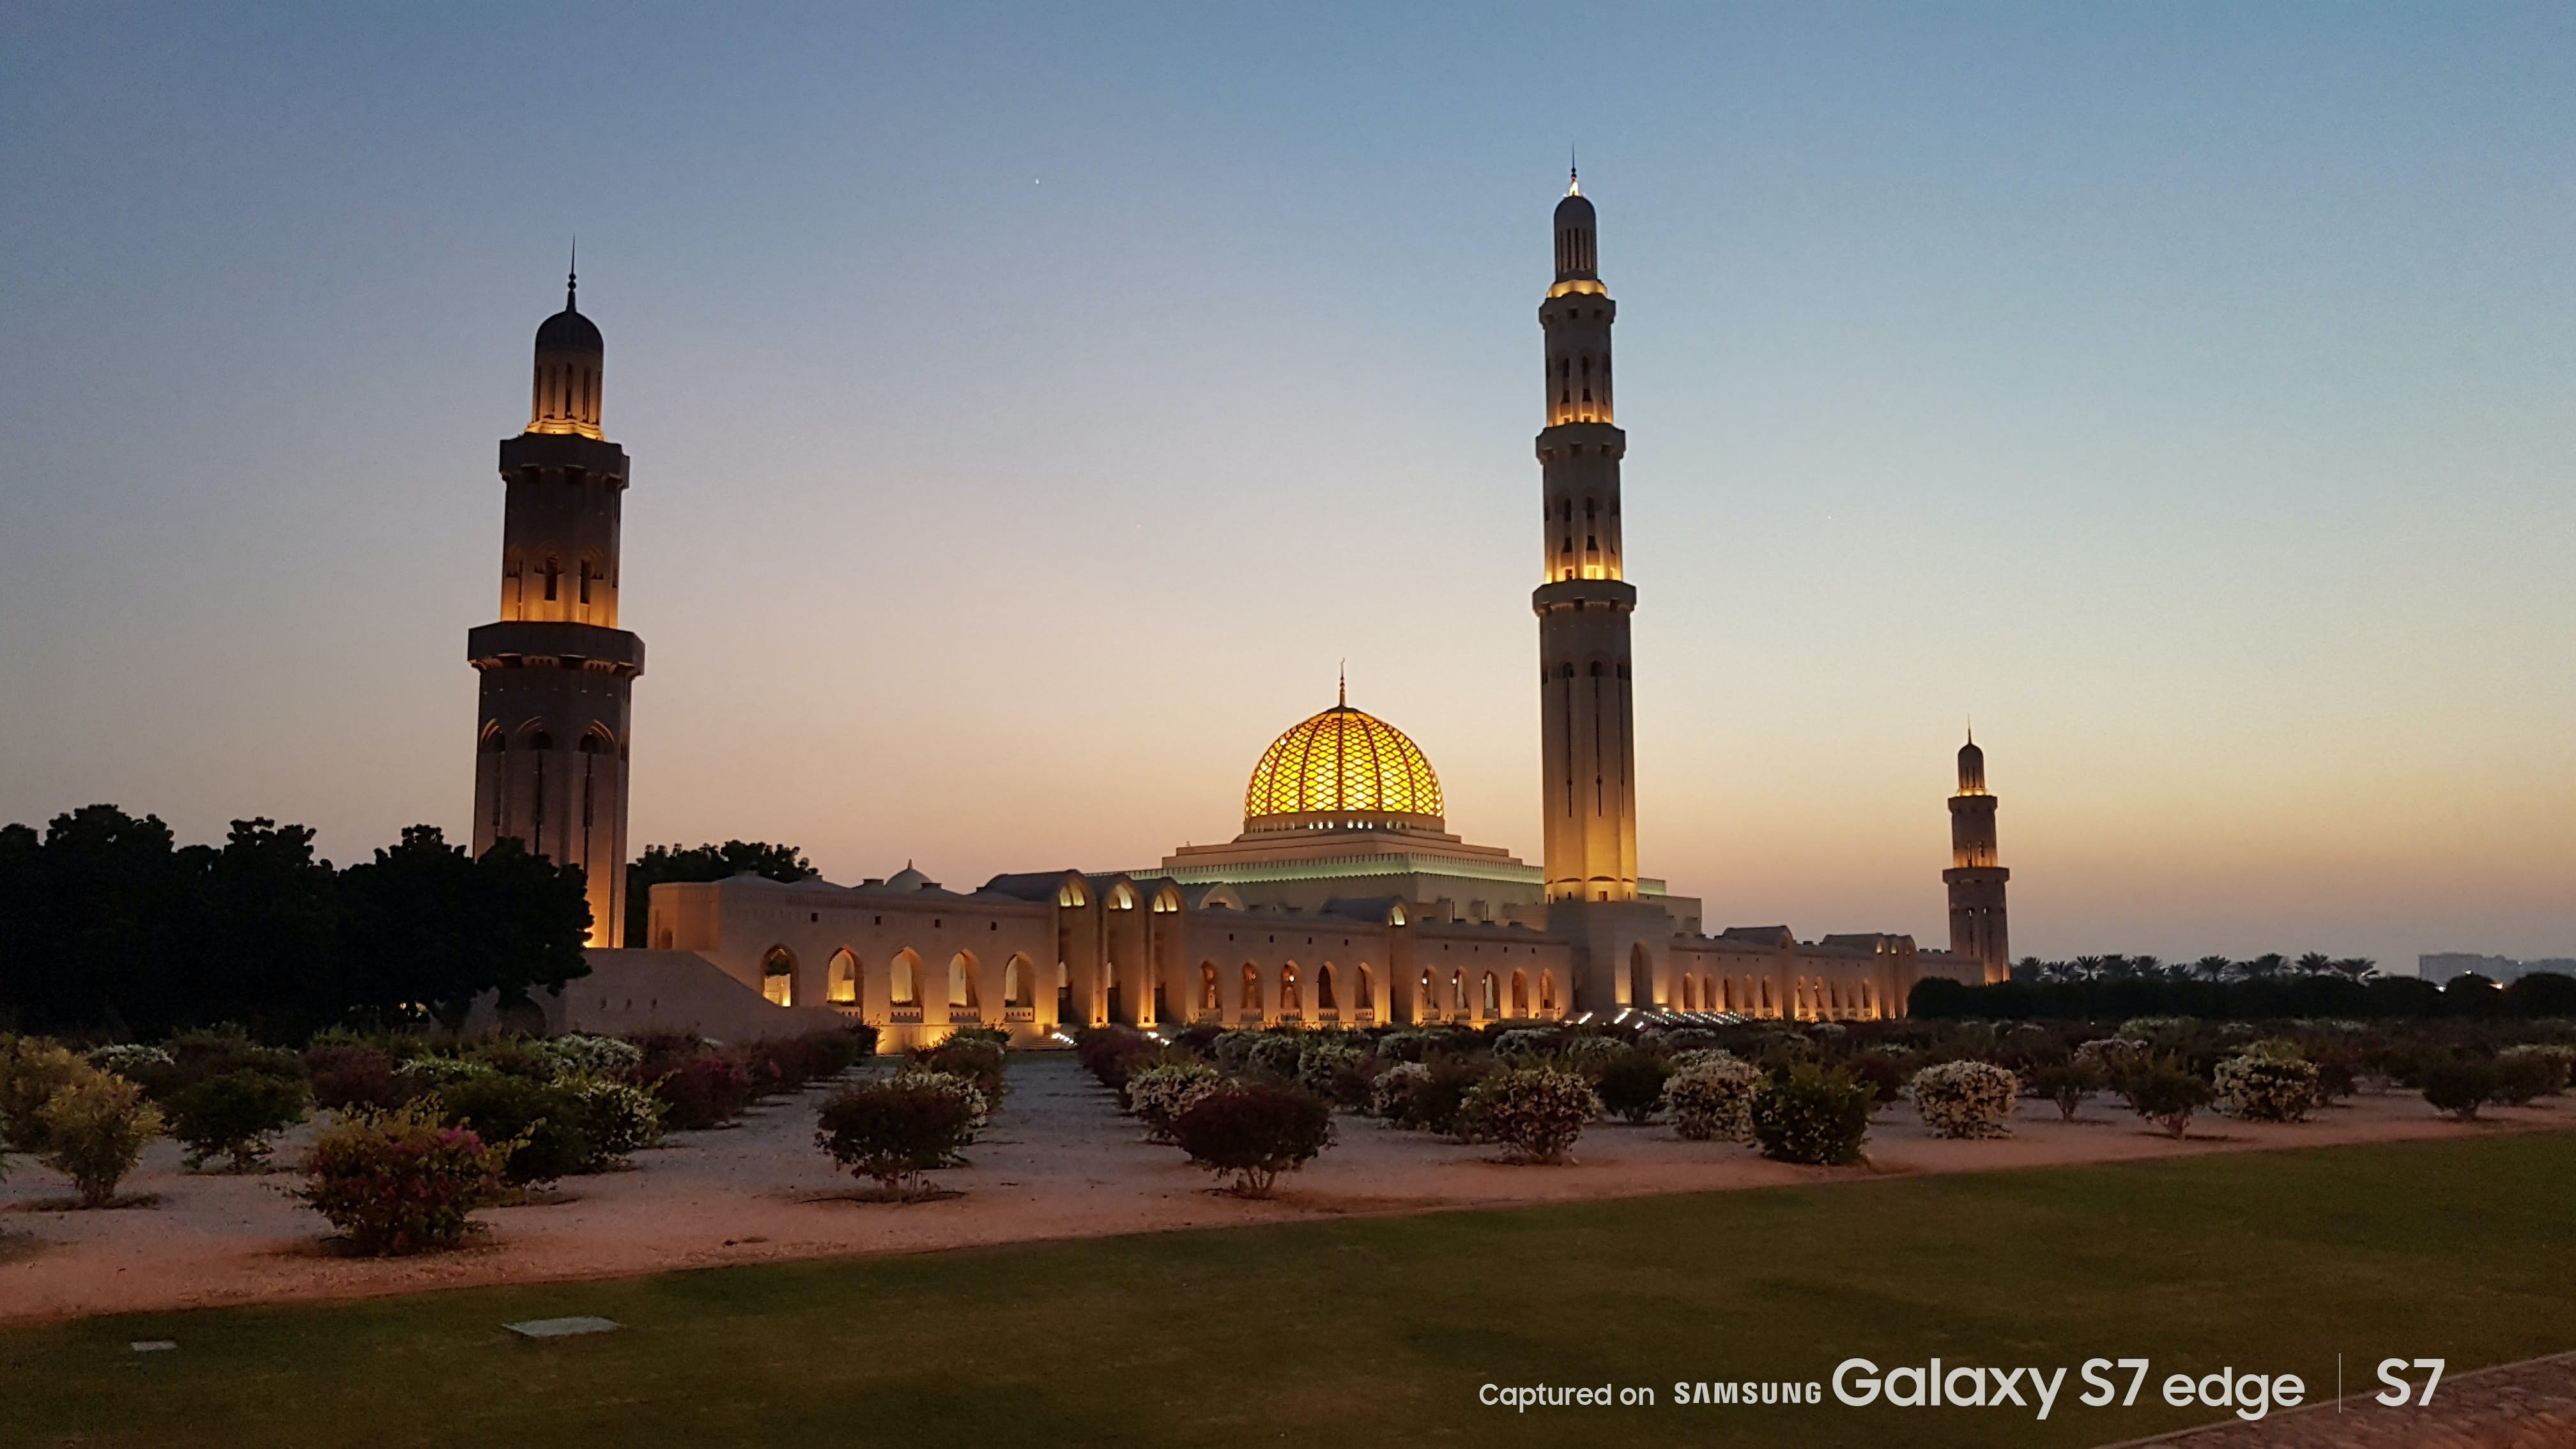 The vast Sultan Qaboos Grand Mosque in Oman's beguiling capital, Muscat © Daniel James / Captured on Samsung Galaxy S7 / S7 edge